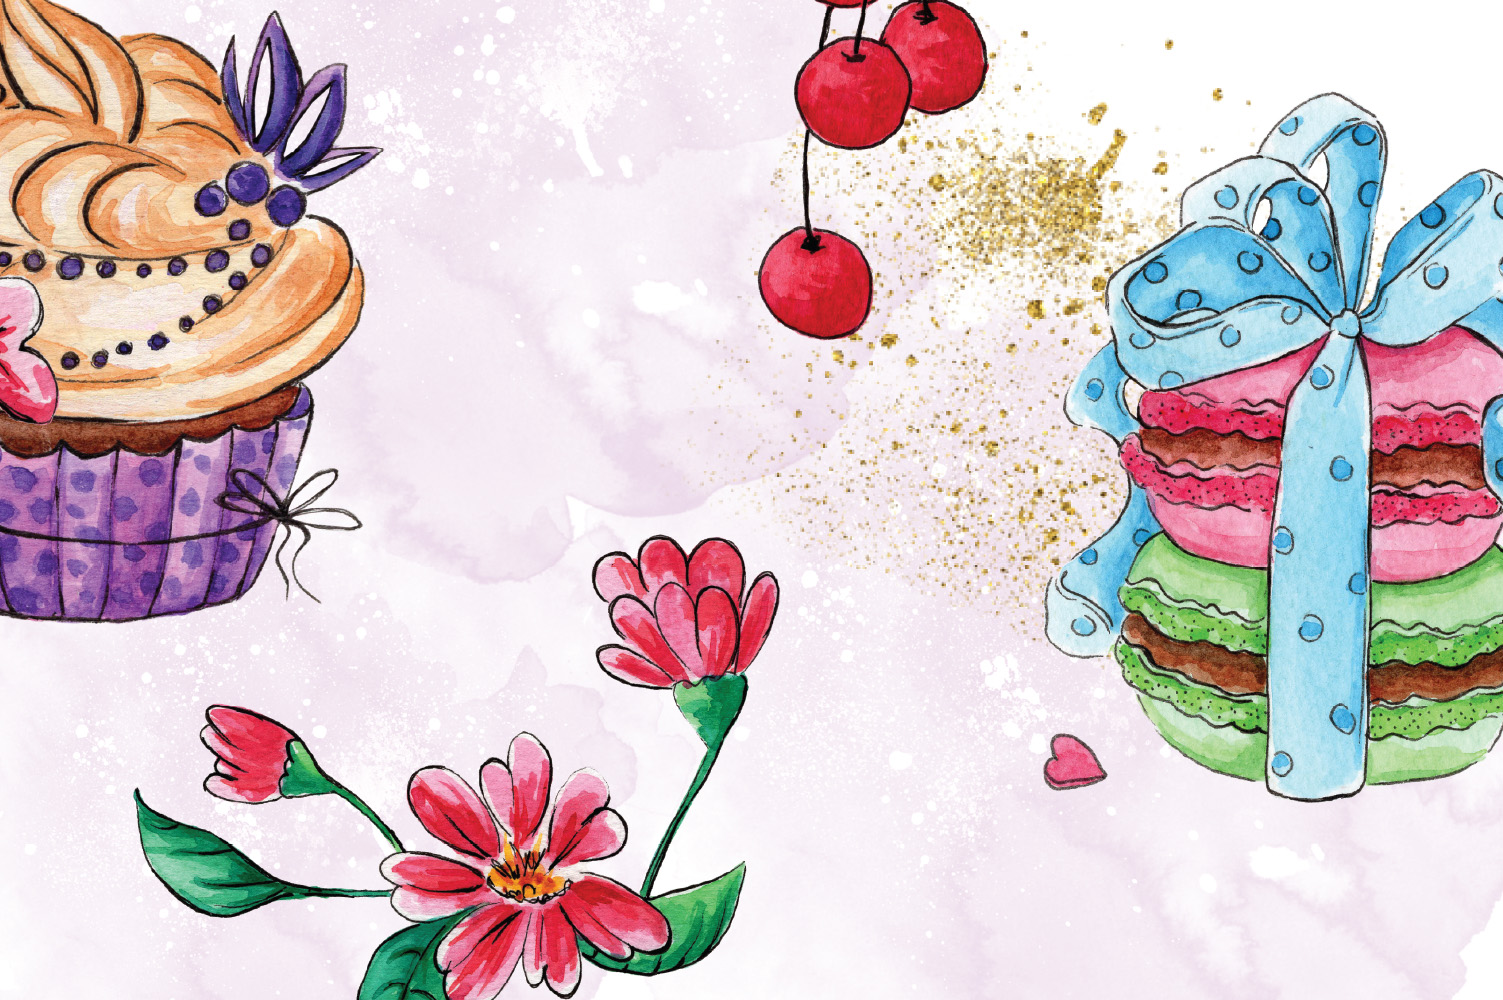 Cakes Collection Clip Art example image 4